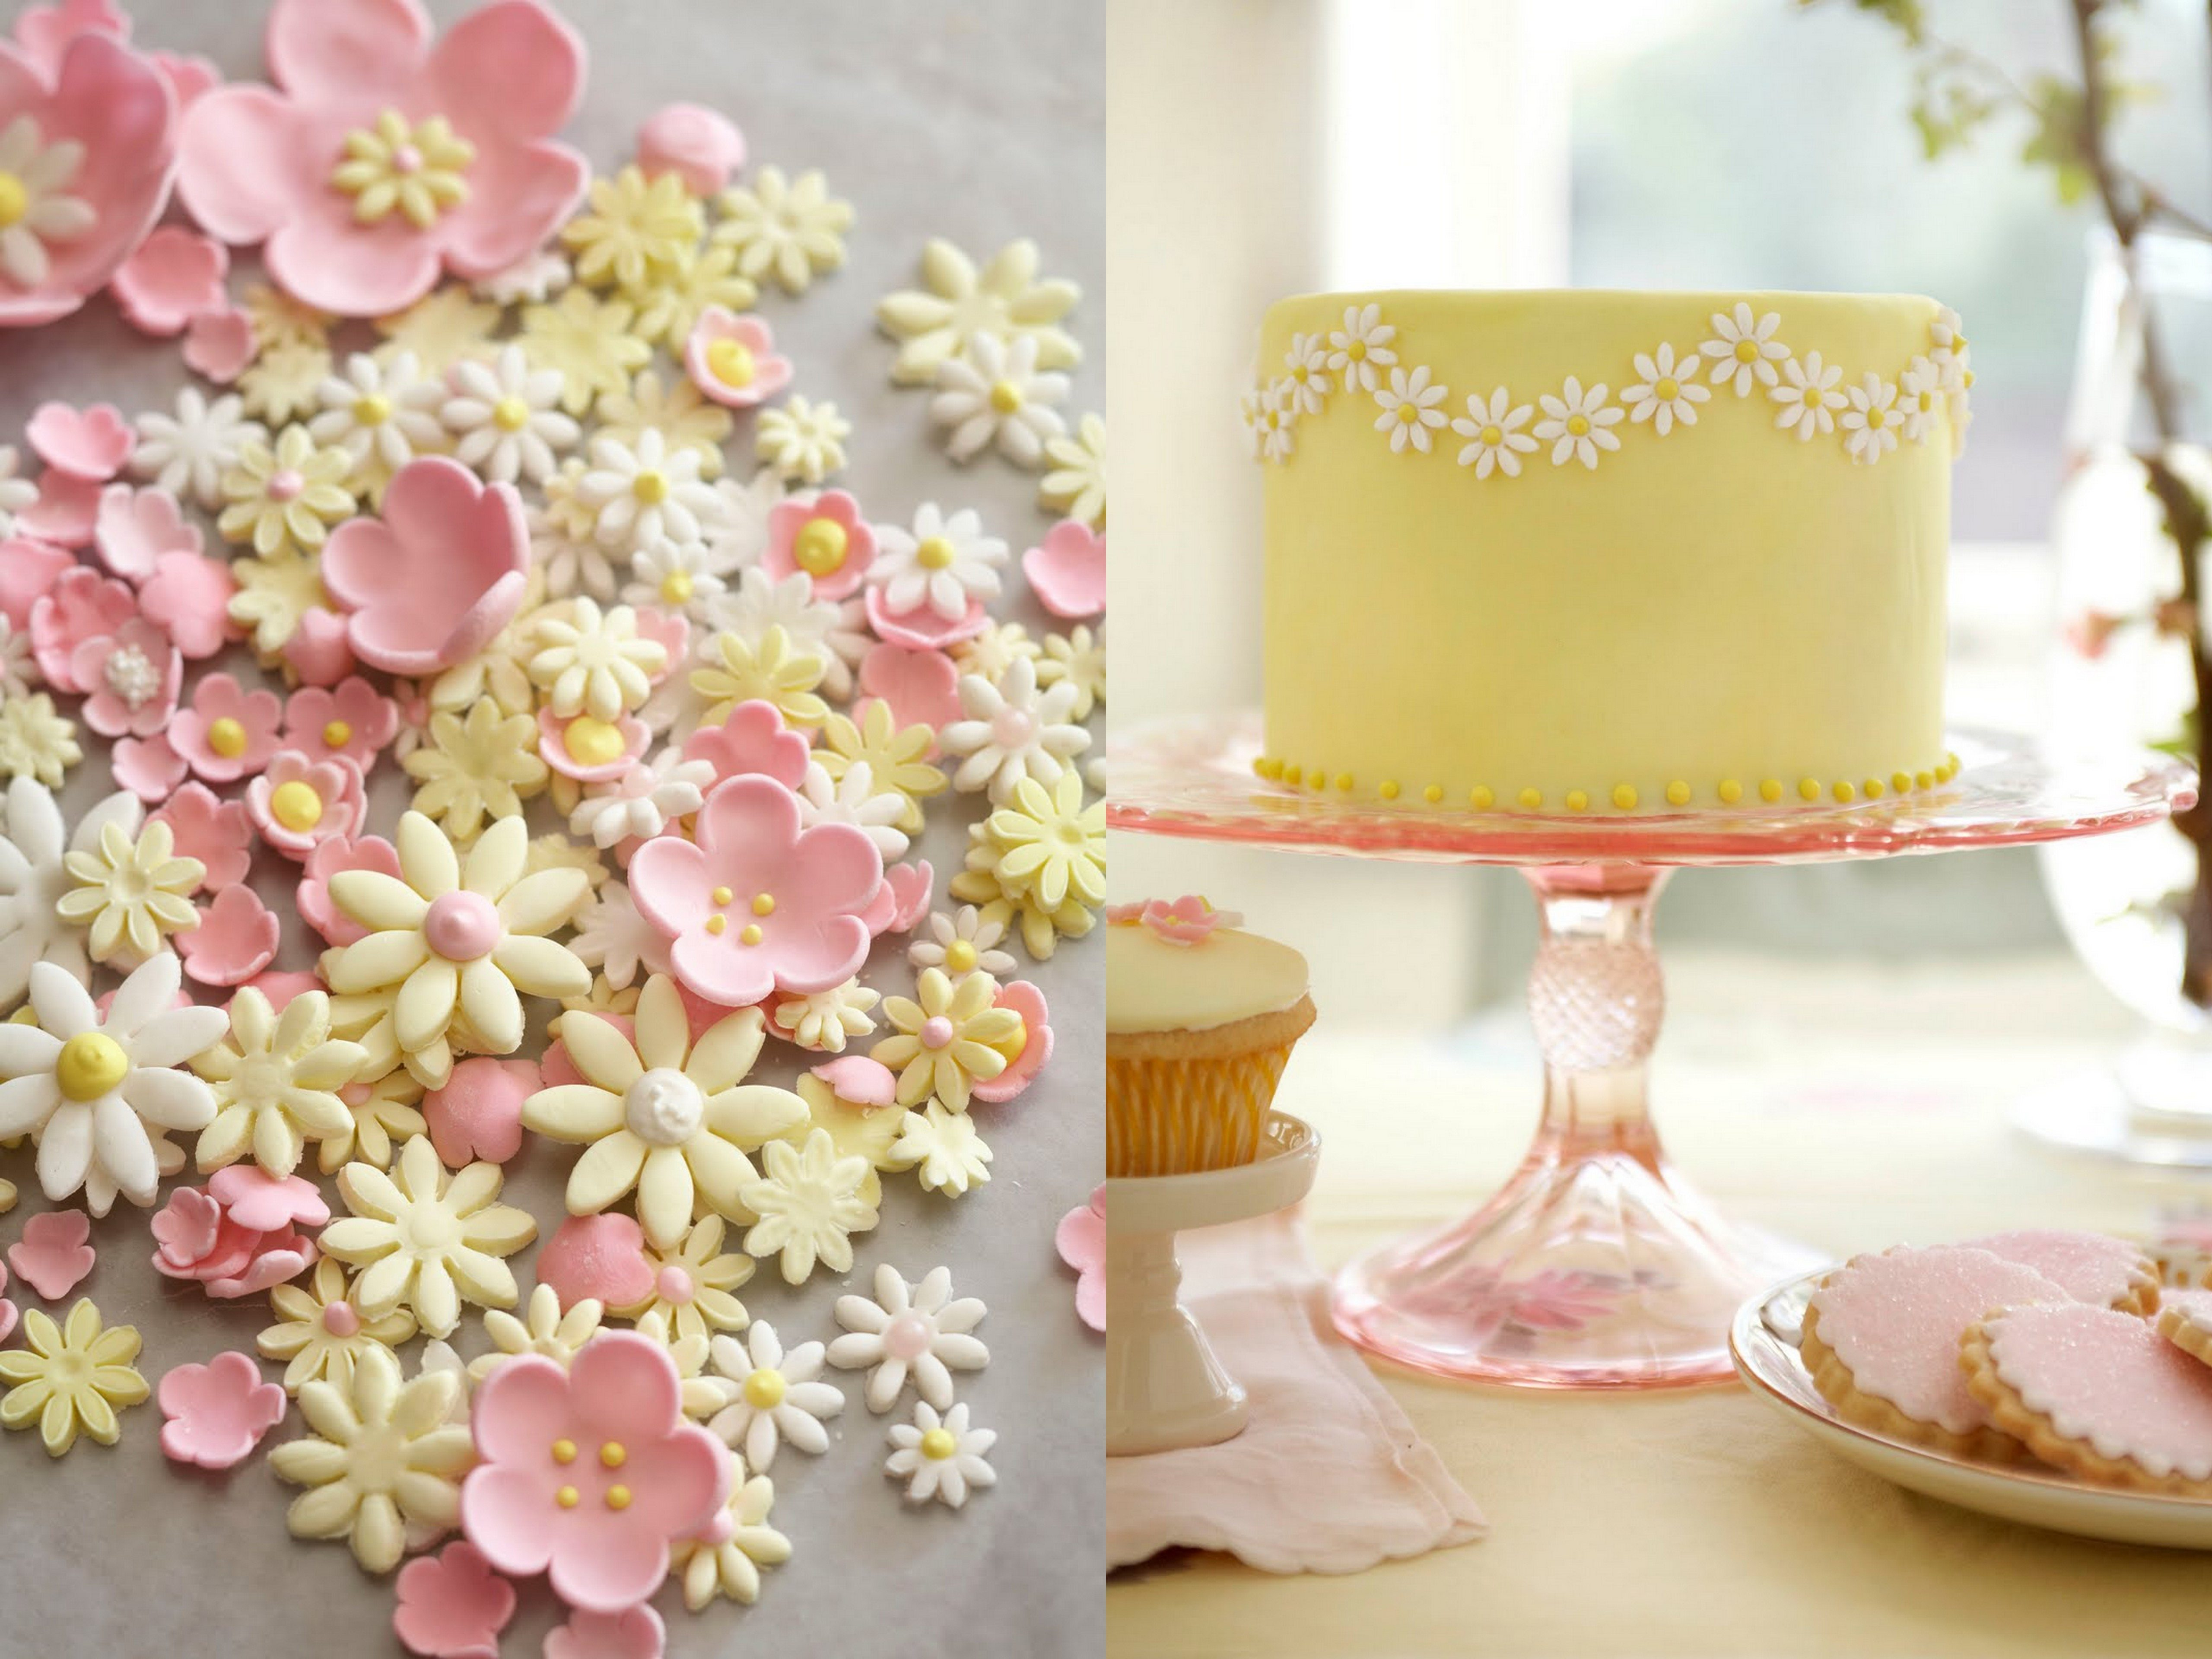 Pretty Cakes + Cupcakes from Cakewalk - The Sweetest Occasion